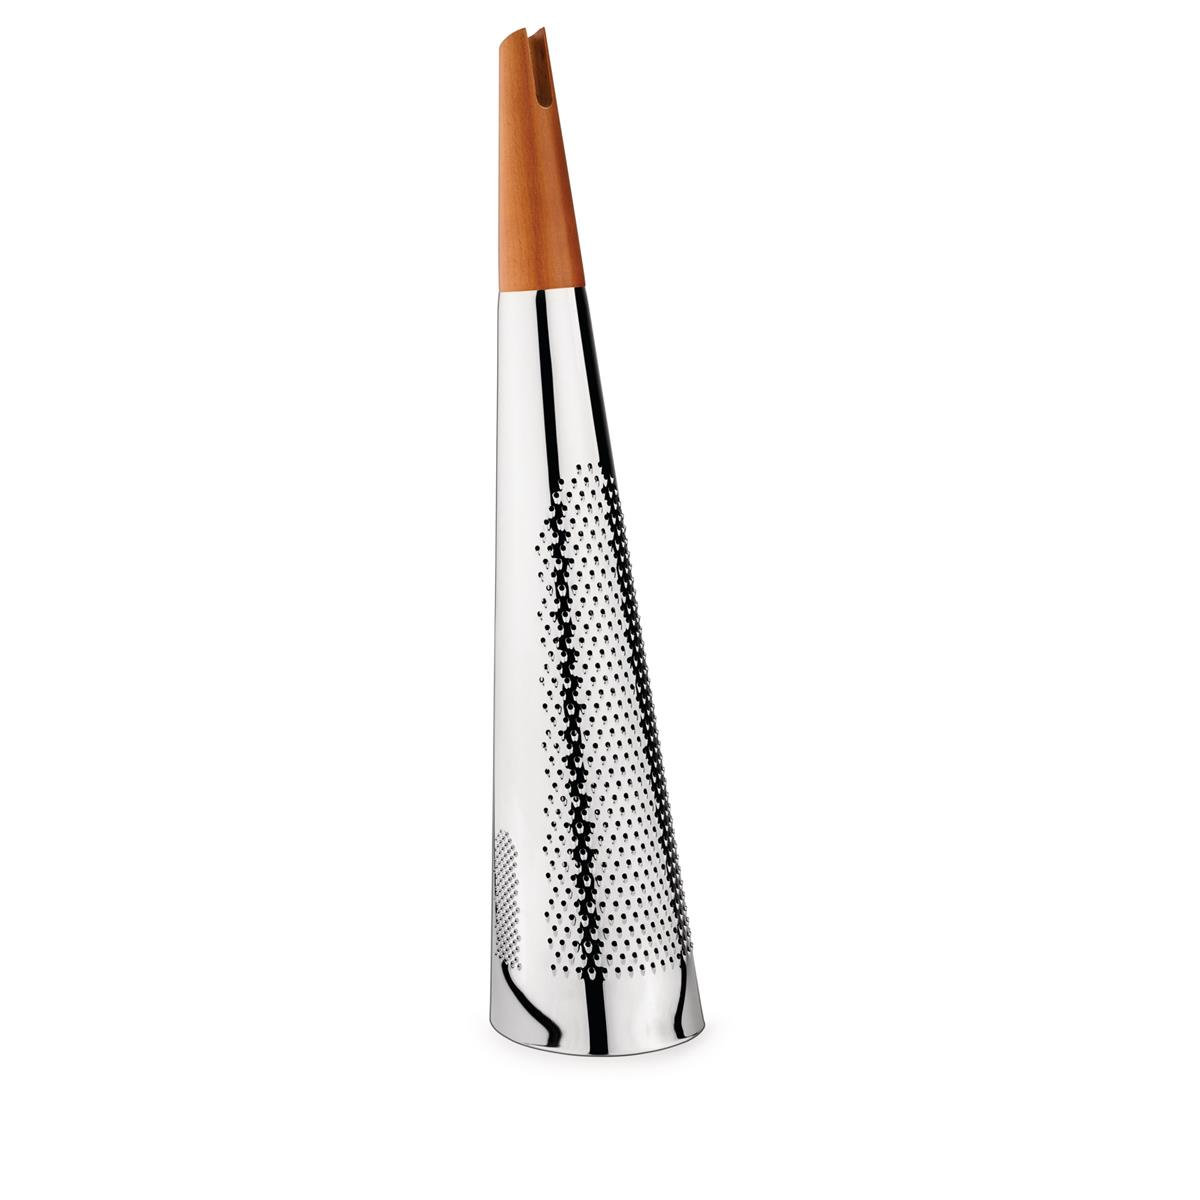 Alessi-Todo Giant grater for cheese and nutmeg in steel and wood